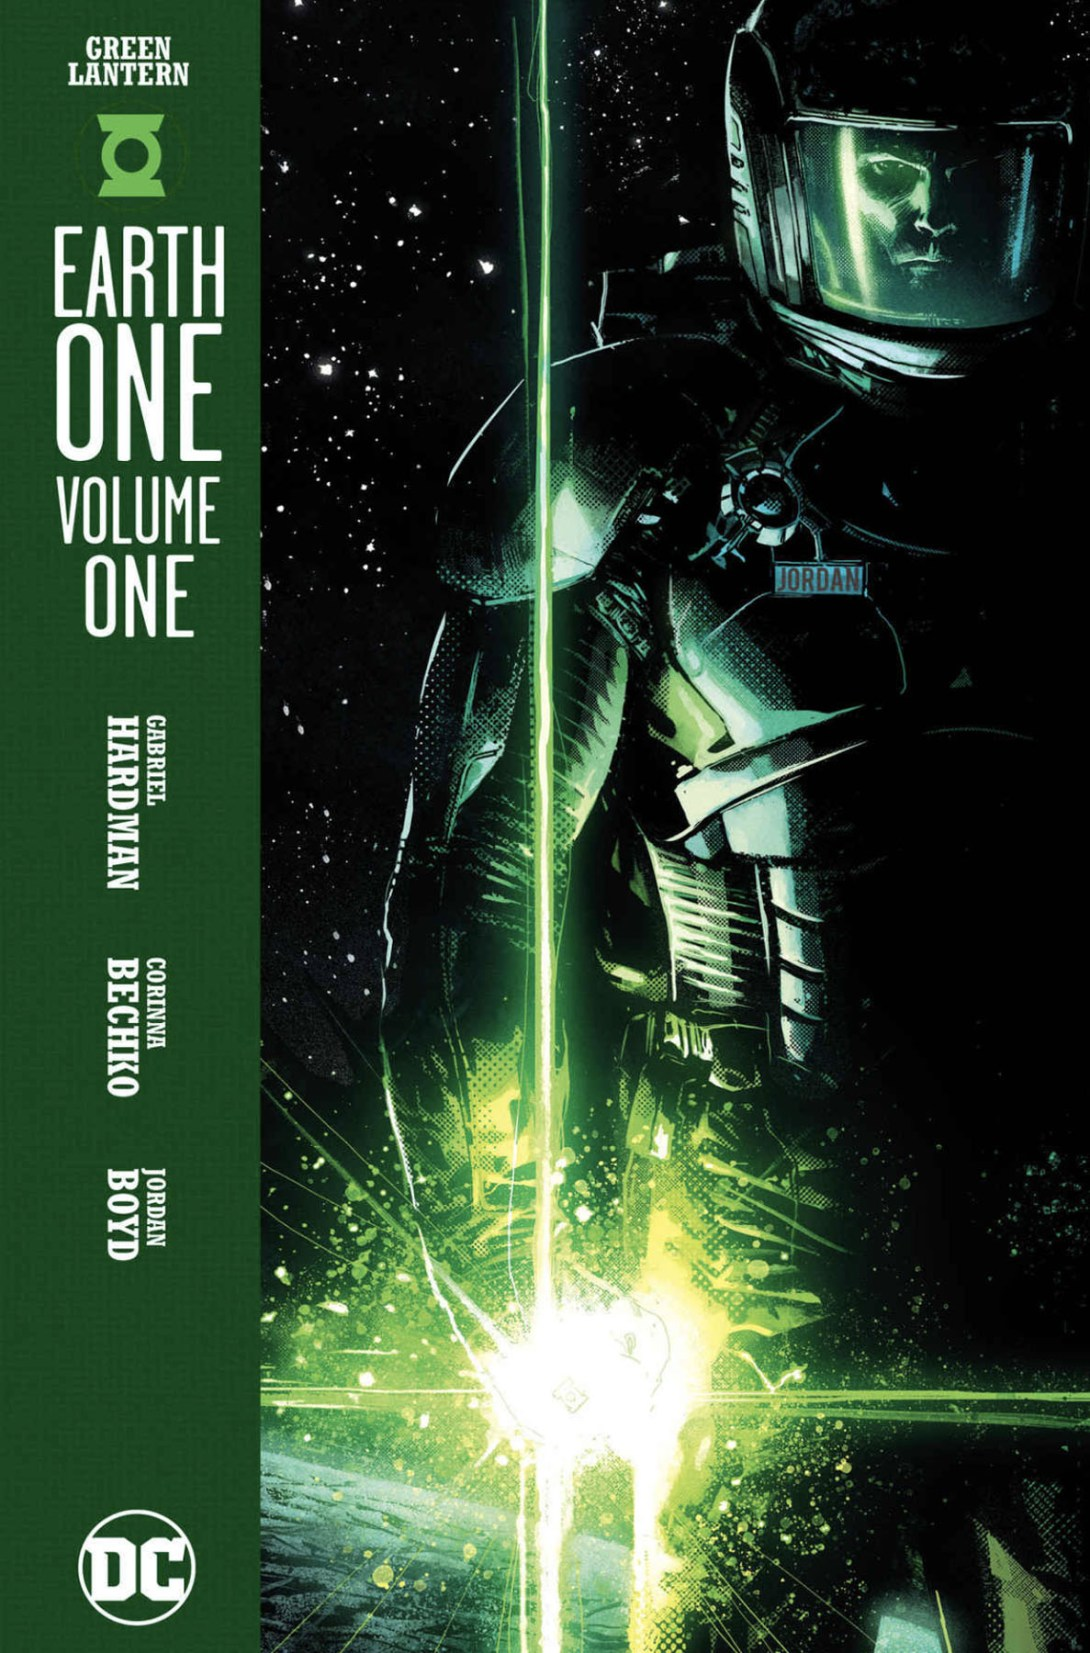 Green Lantern Earth One - DC Comics News